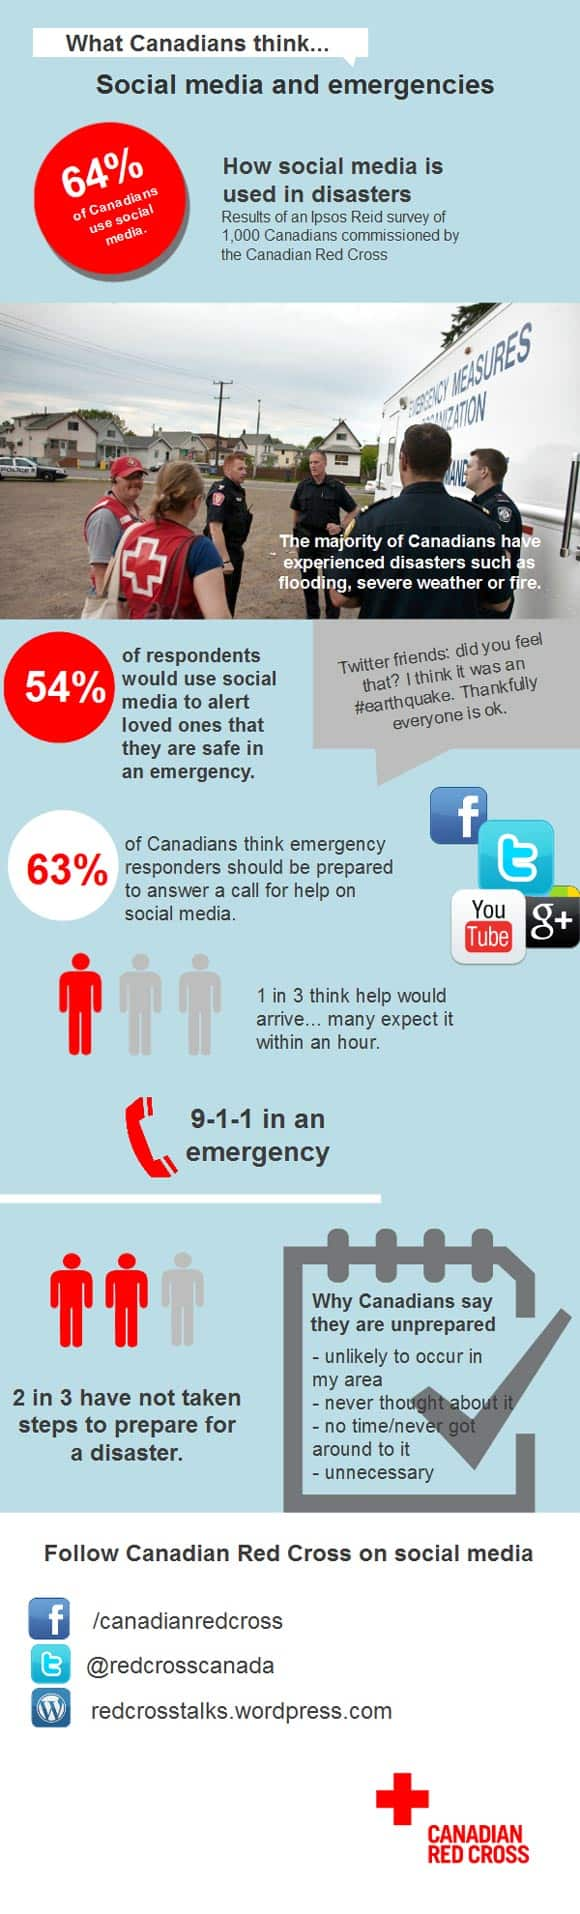 should-we-be-using-social-media-networks-to-make-emergency-911-calls-especially-during-major-disasters-feature2.jpg